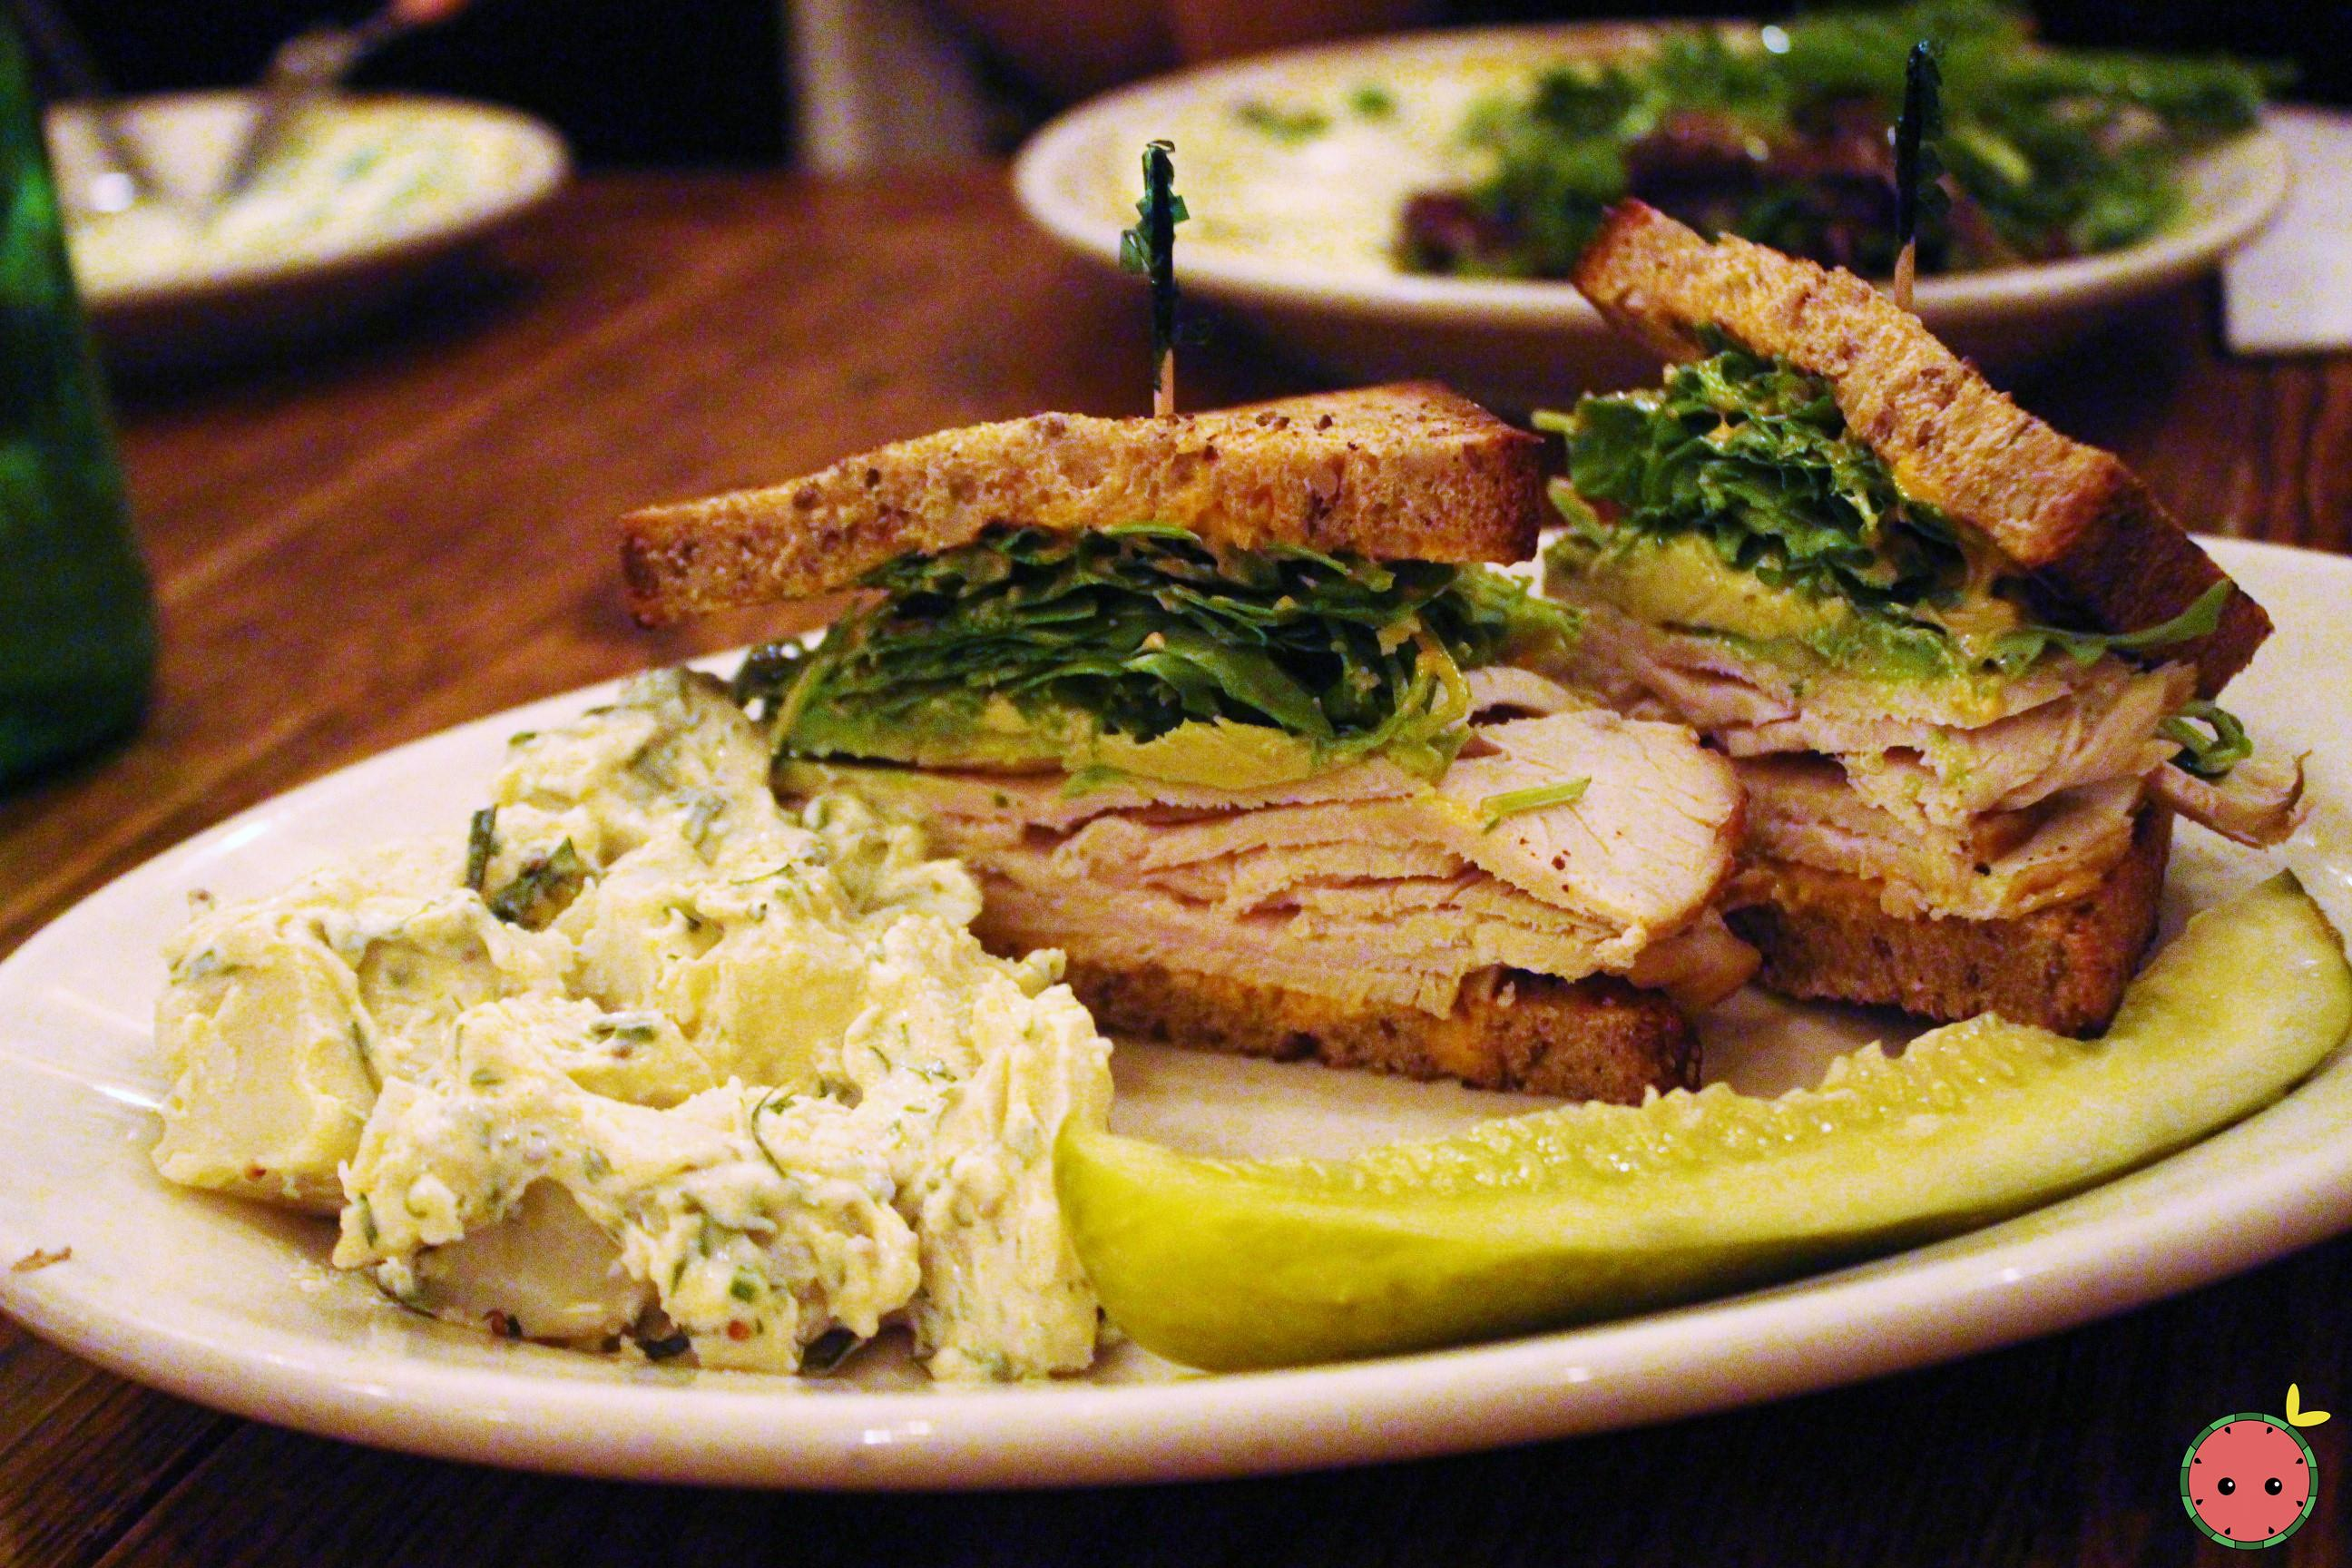 Turkey sandwich with argula, avocado, and spicy mayonnaise with side potato salad and pickle